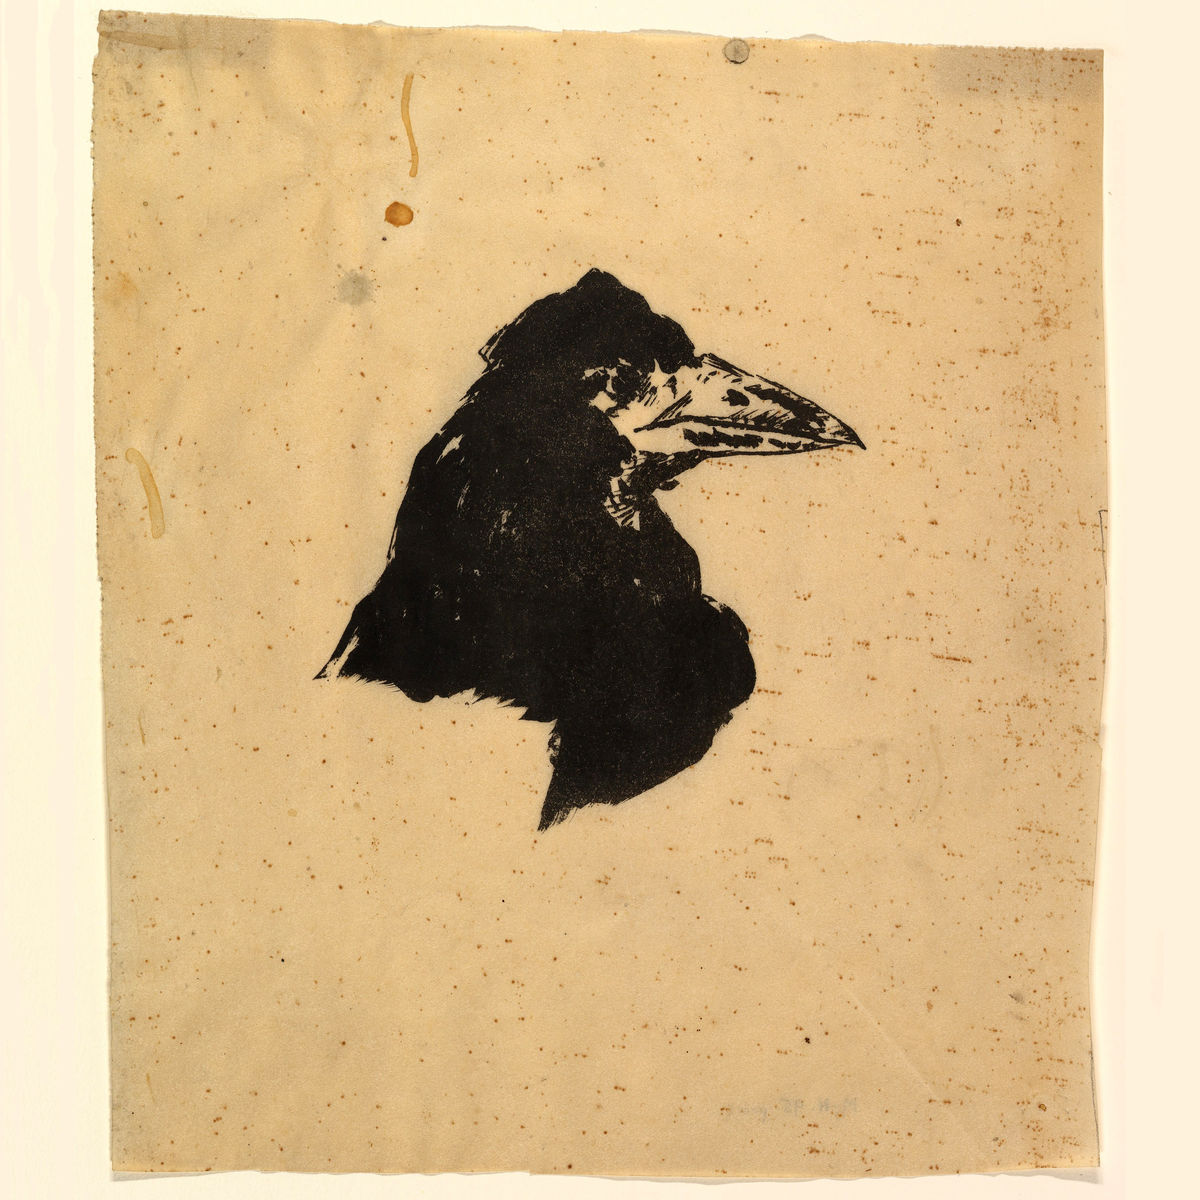 Design for the Poster and Cover for 'The Raven' by Édouard Manet - 1875